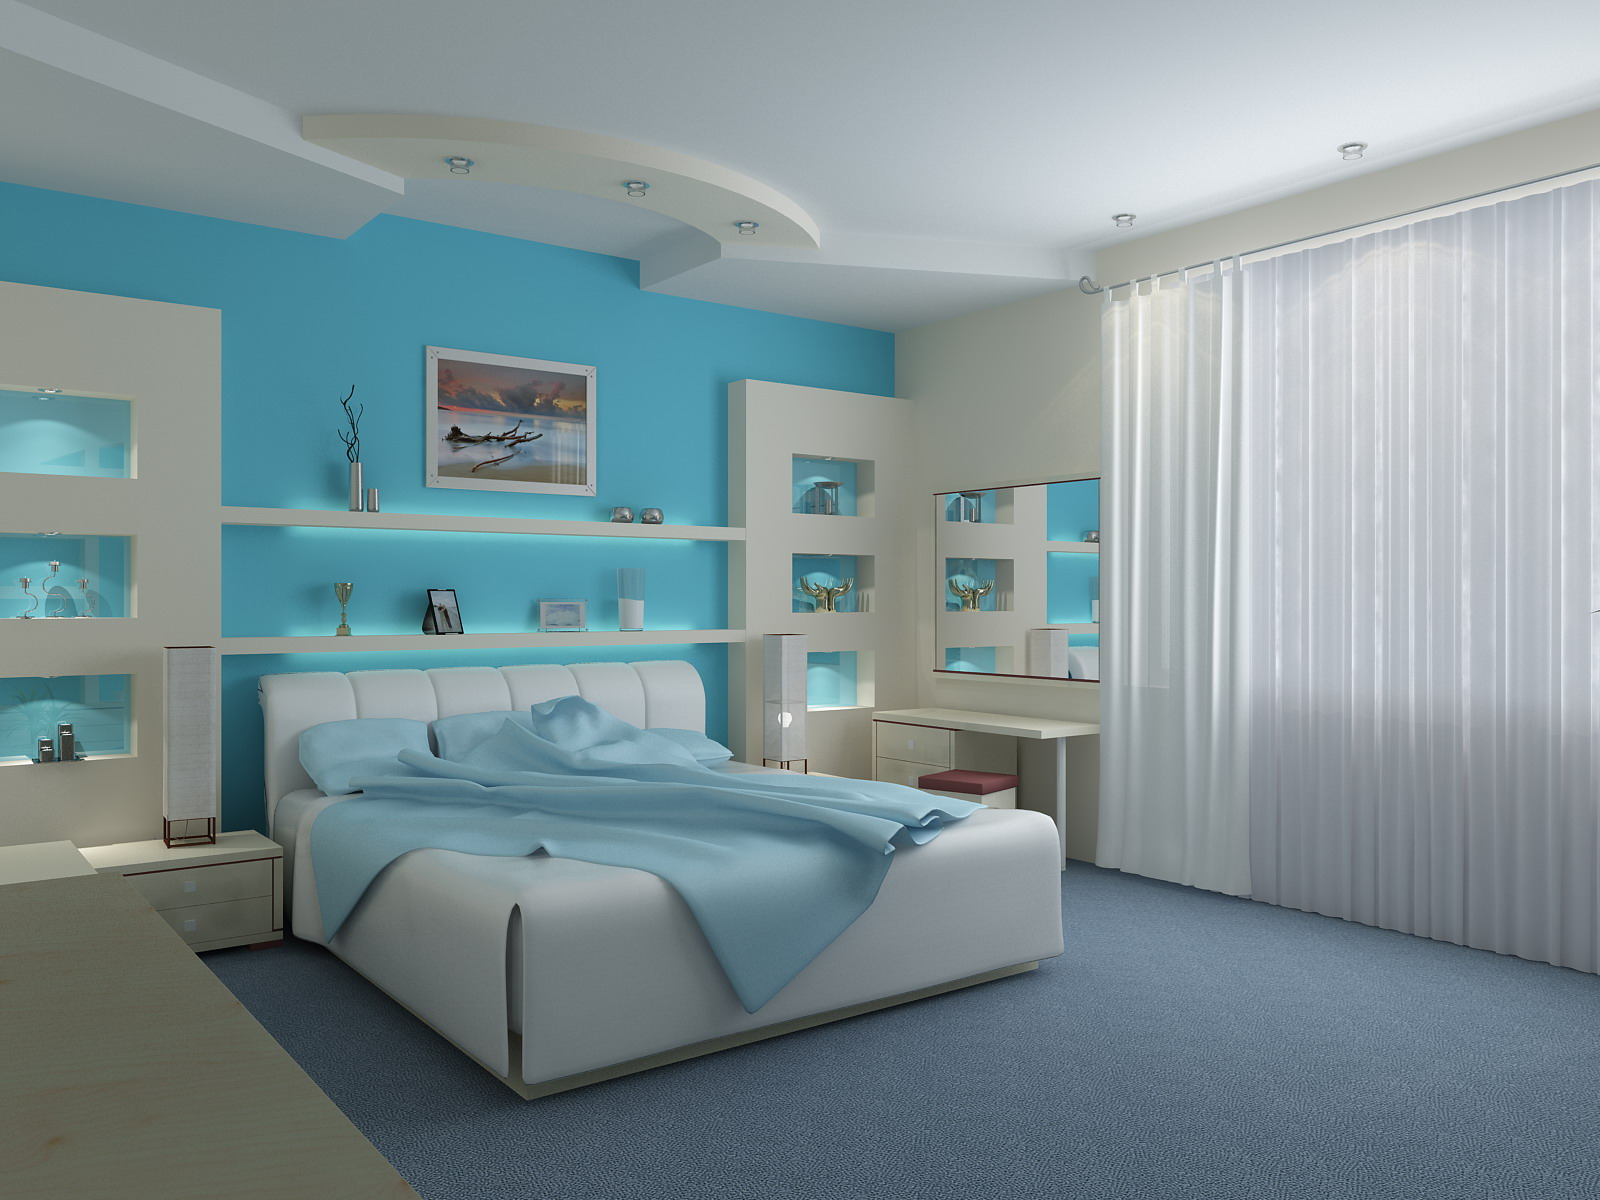 Coastal living bedroom furniture popular interior house ideas for Blue beach bedroom ideas